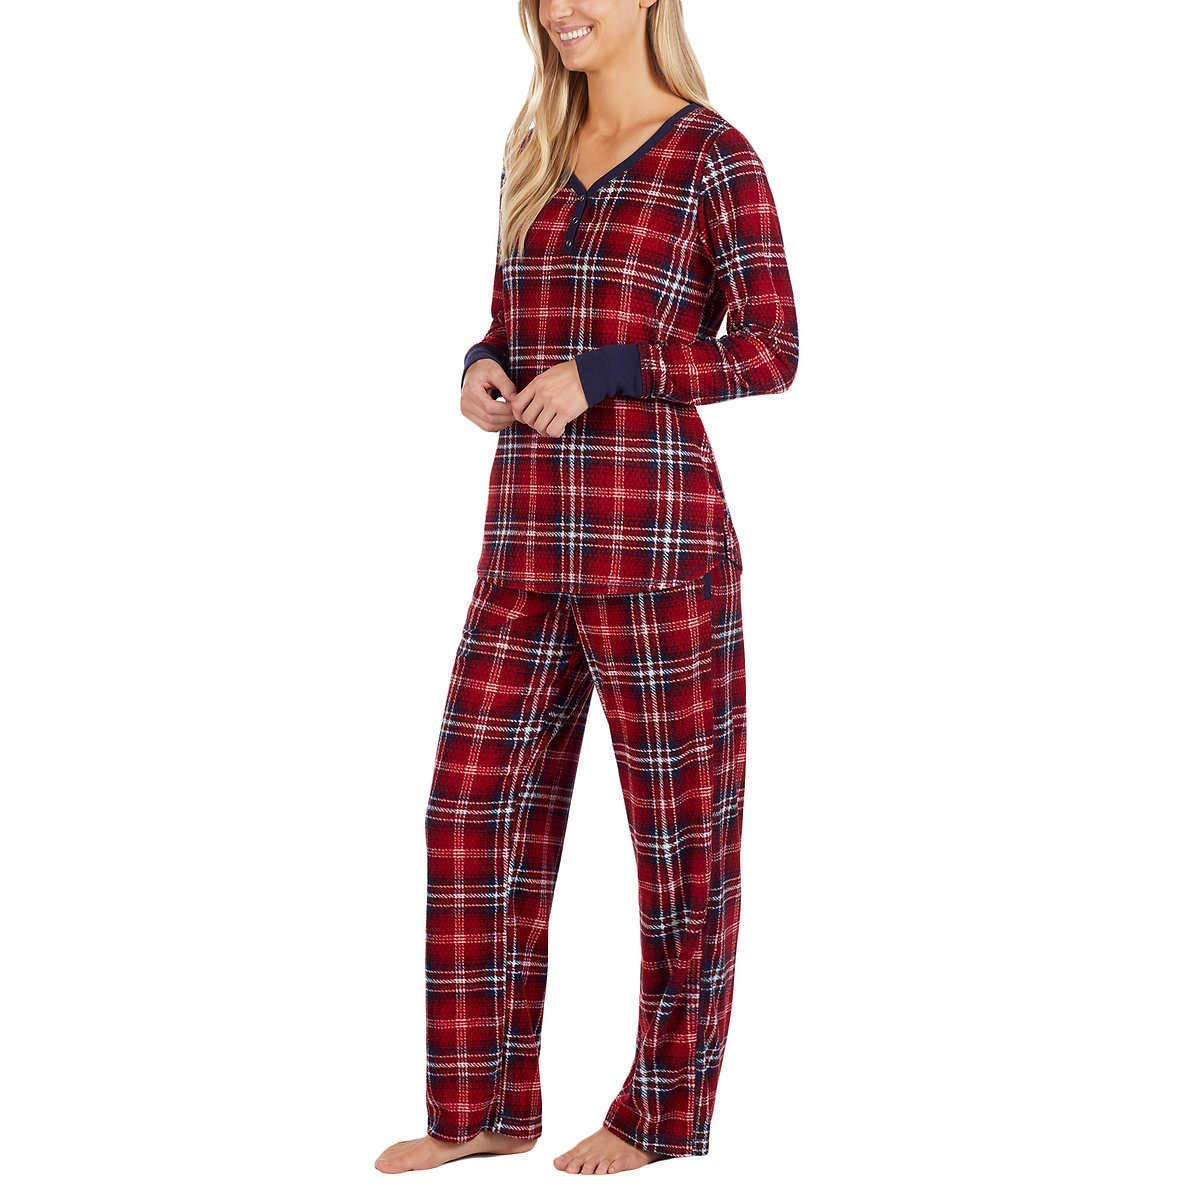 50f5418ef0a5 Nautica Women s 2 Piece Fleece Pajama Sleepwear Set at Amazon Women s  Clothing store